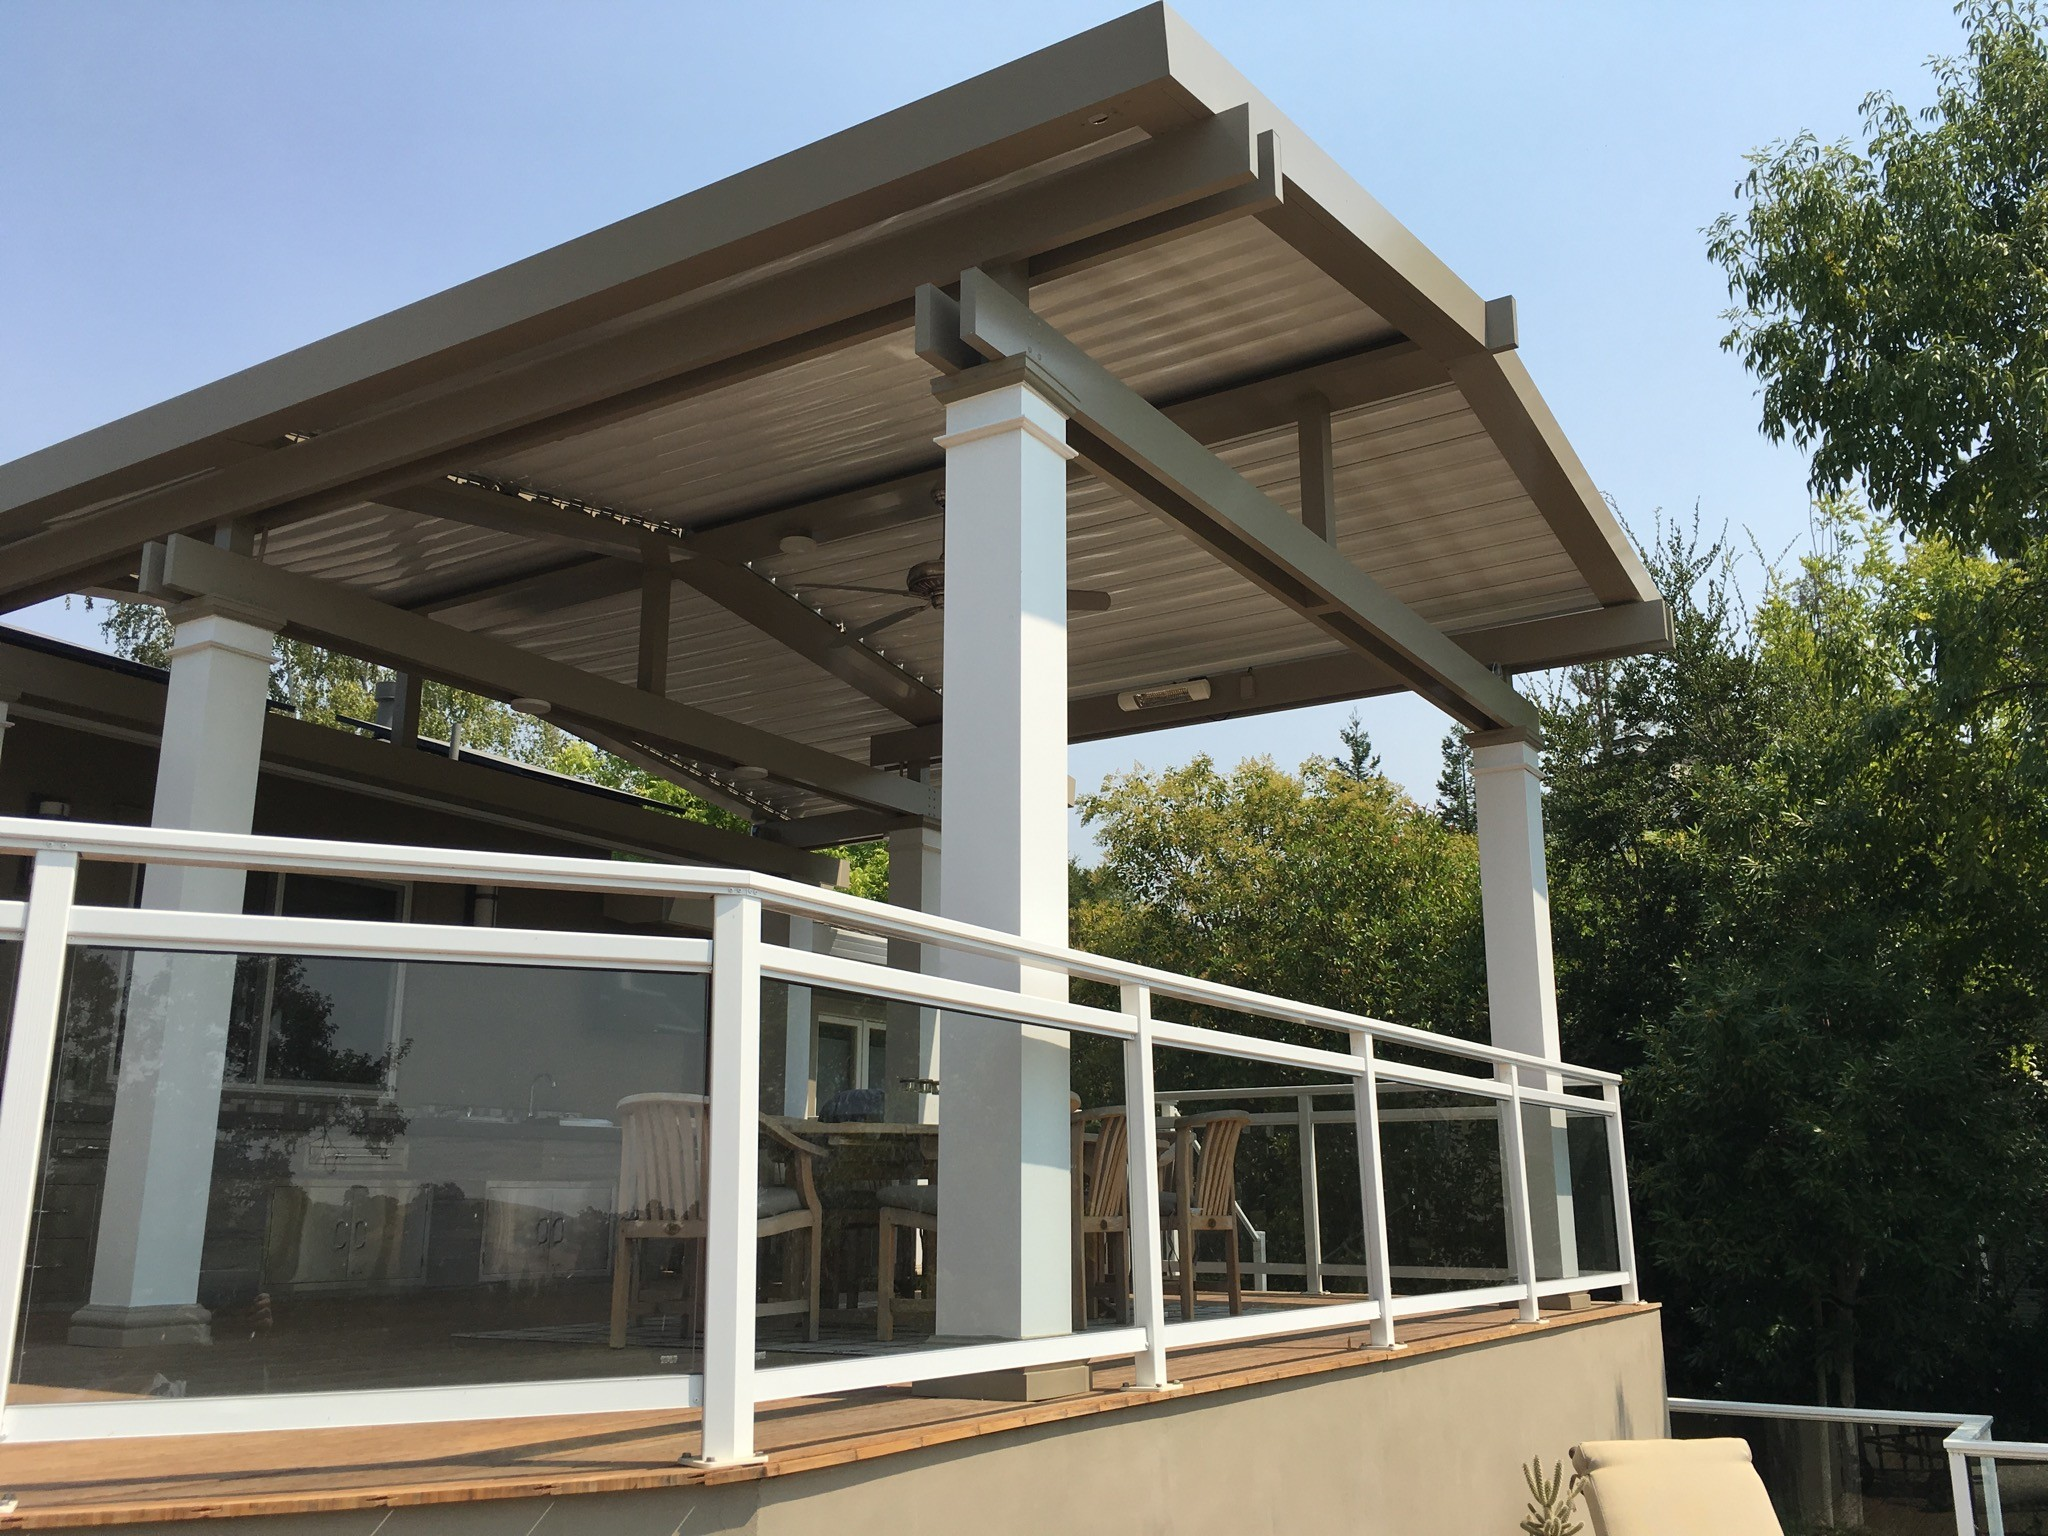 Patio Covers Alamo Ca Sc Construction Modesto Ca